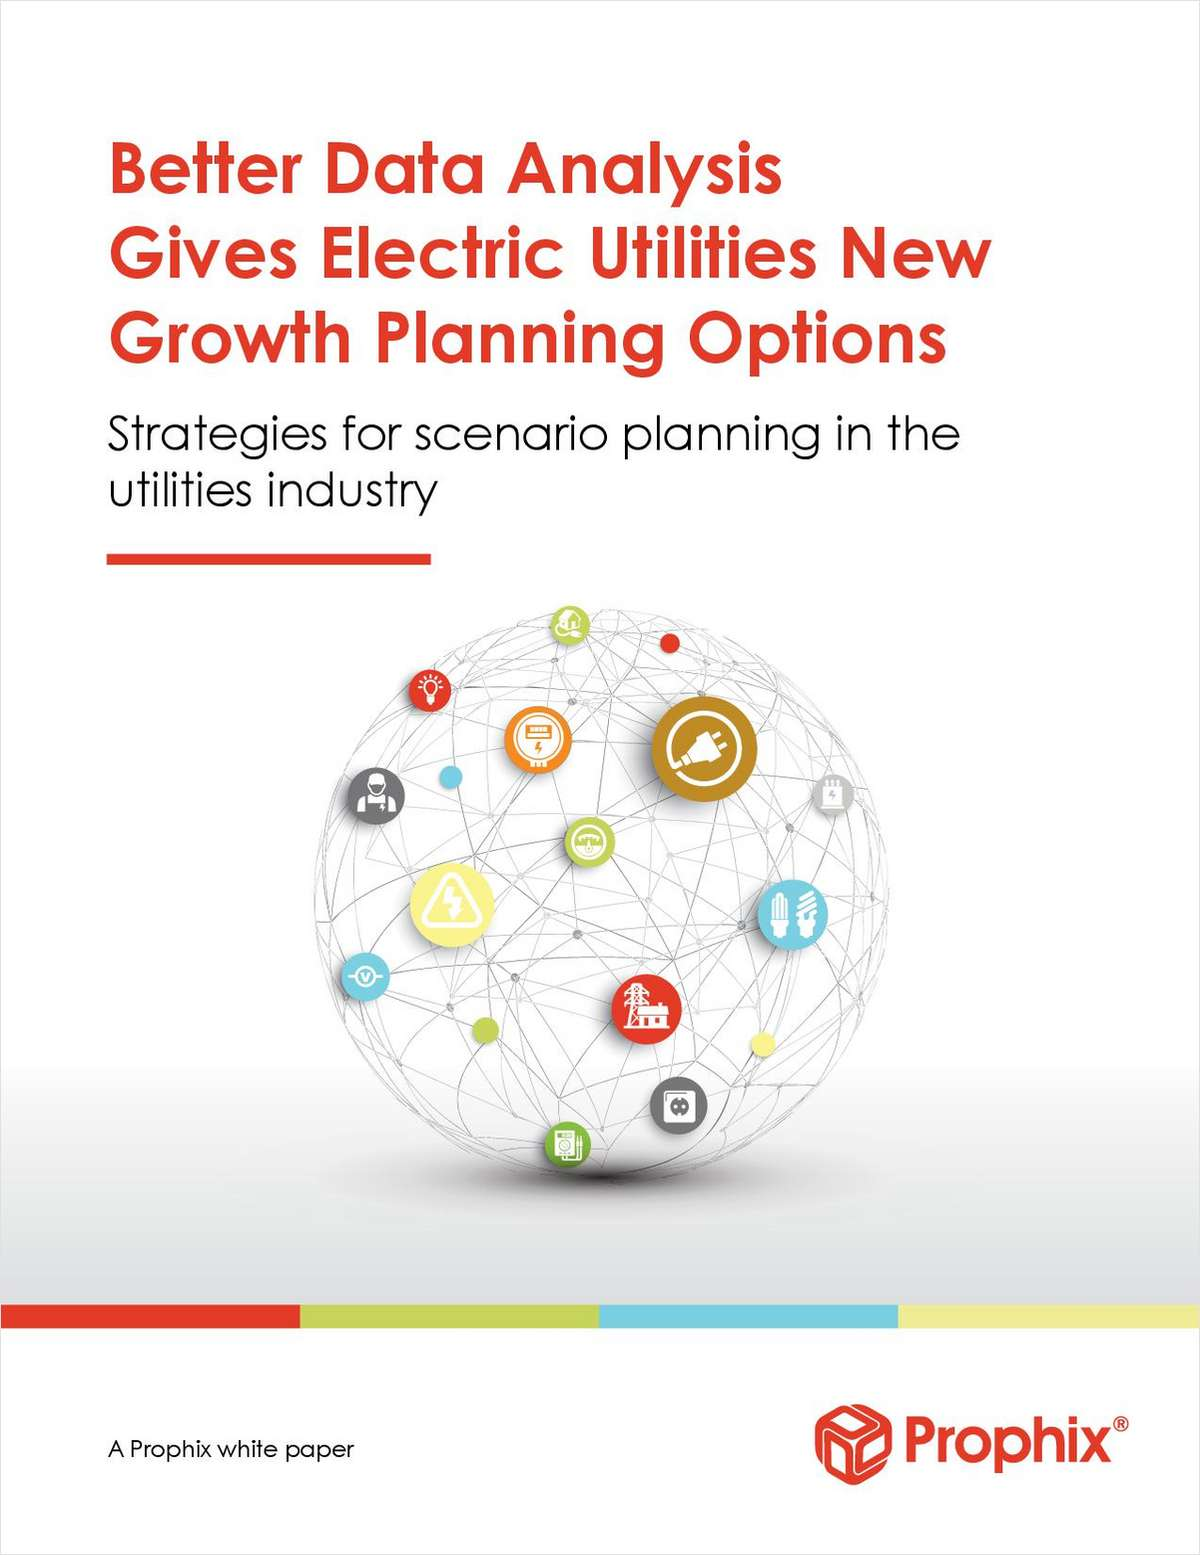 Better Data Analysis Gives Electric Utilities New Growth Planning Options